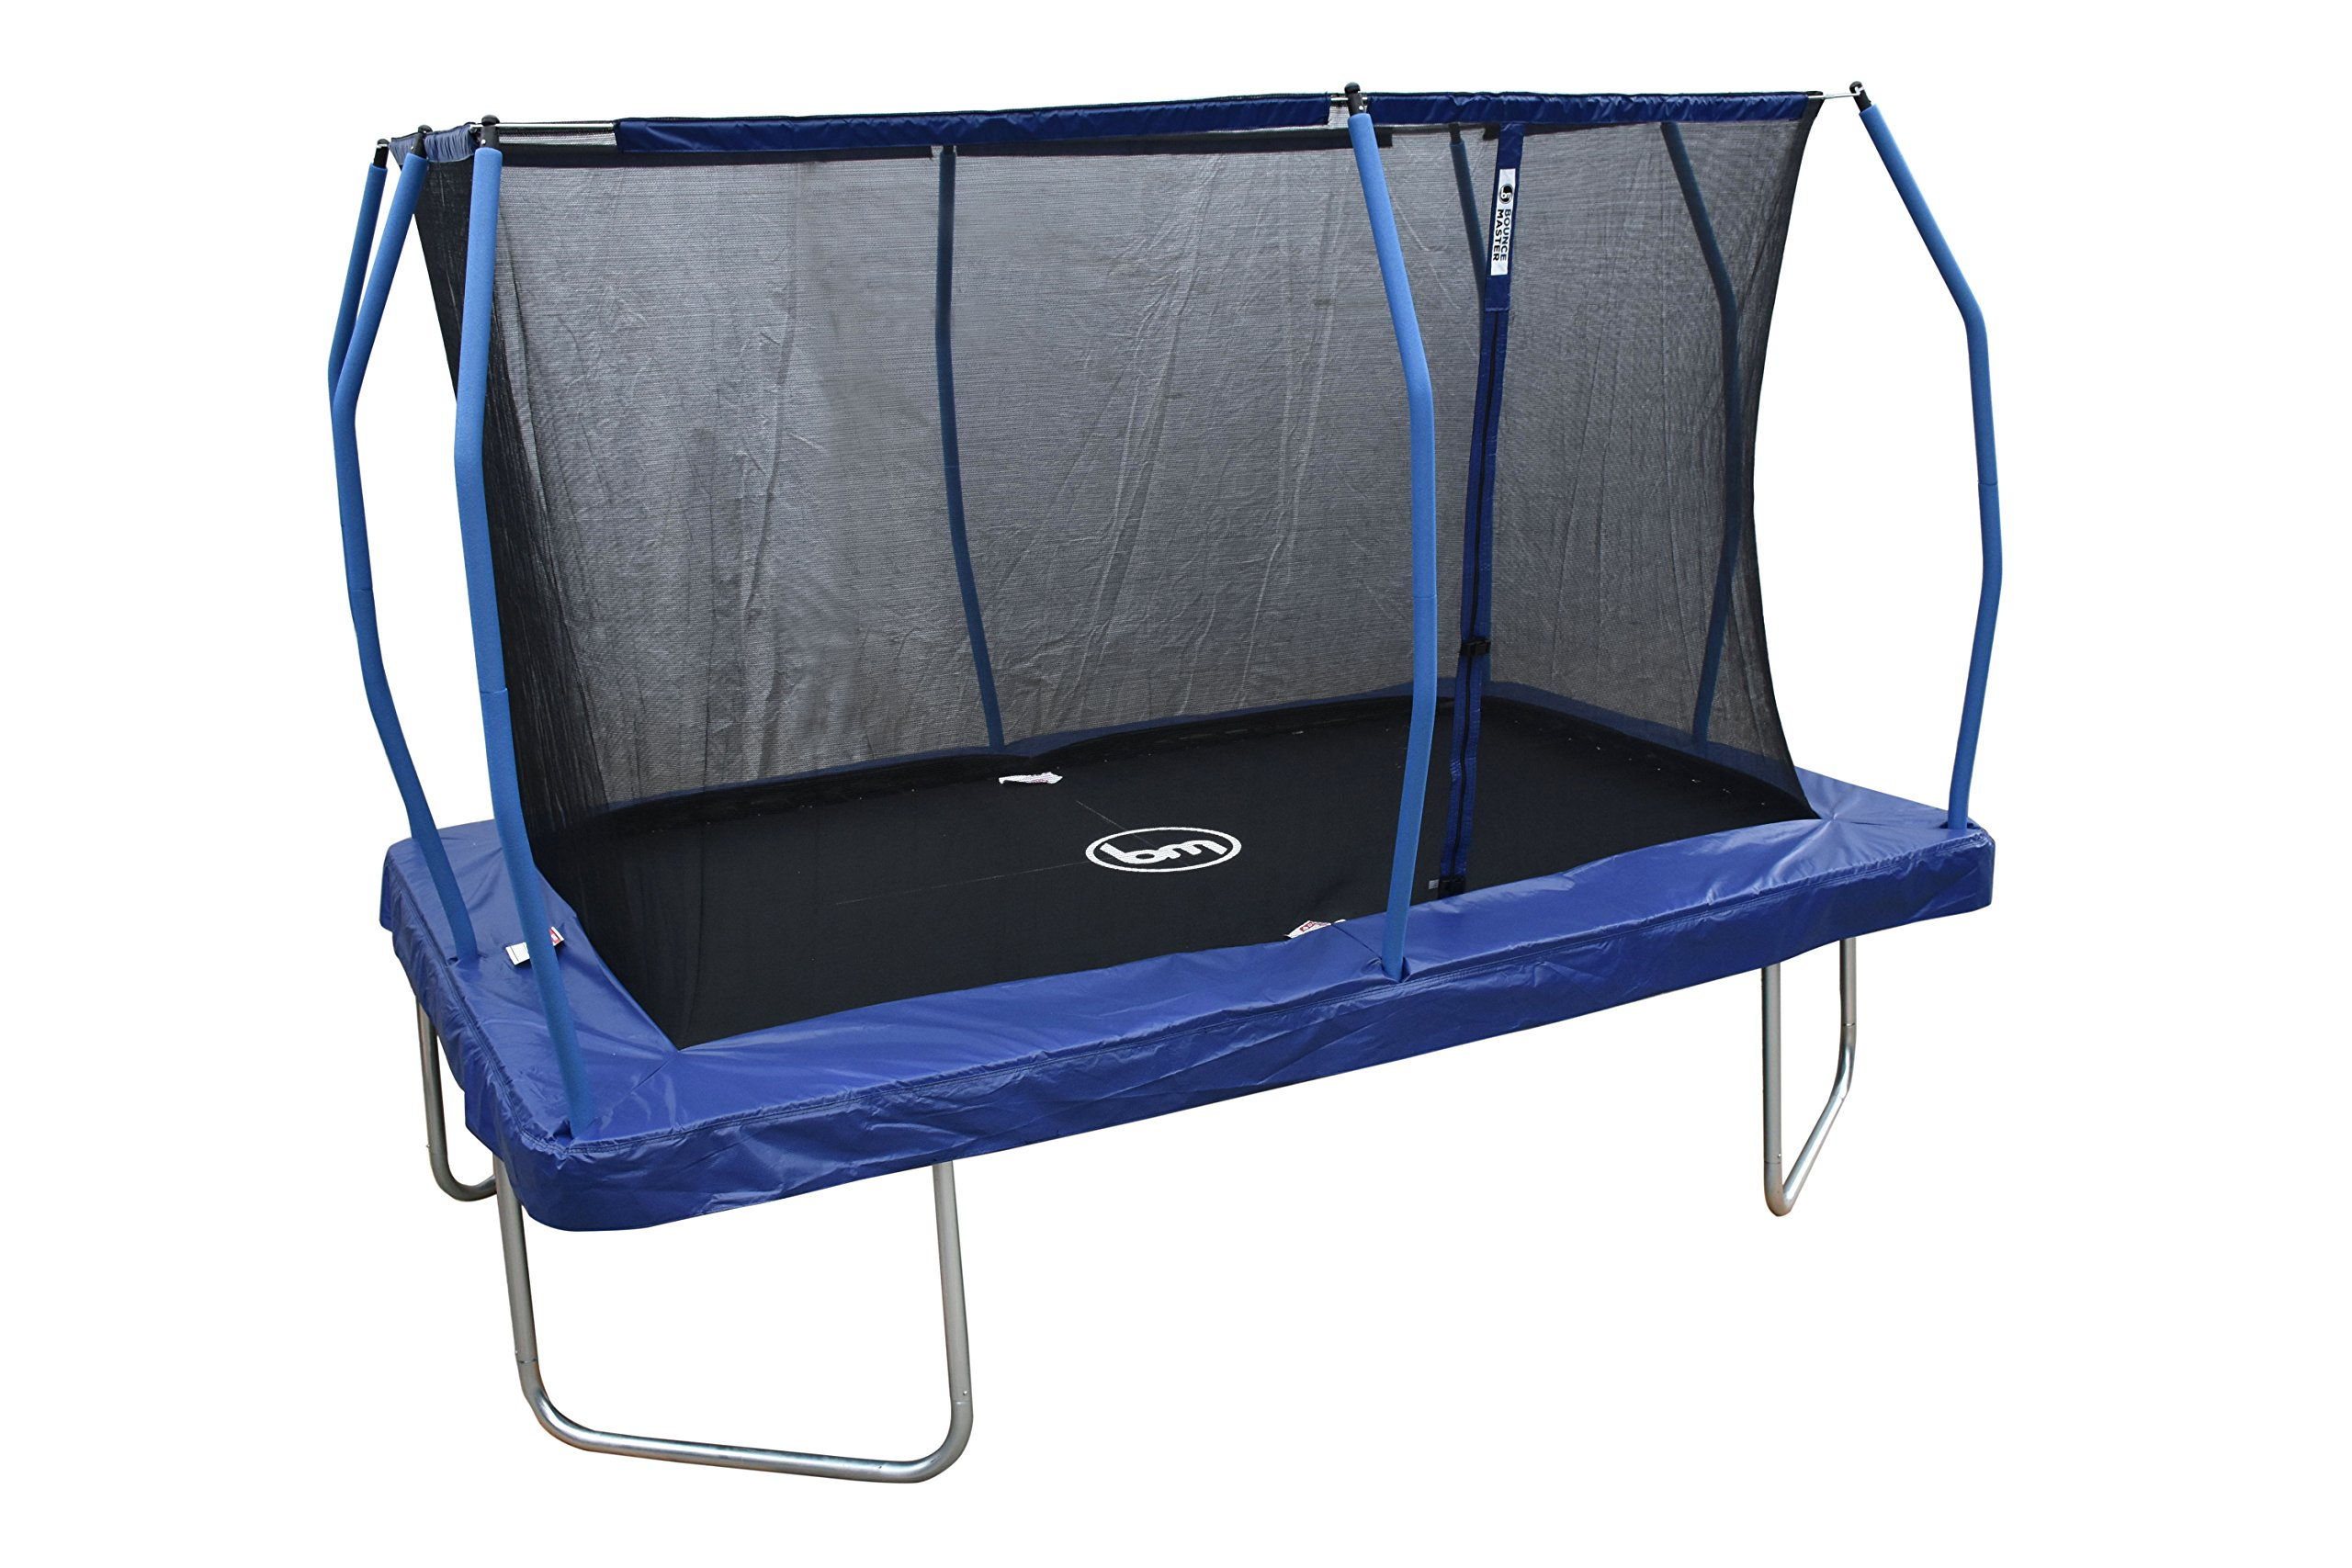 Bounce Master Enclosure 12x8' Rectagular Trampoline by Bounce Master (Image #2)